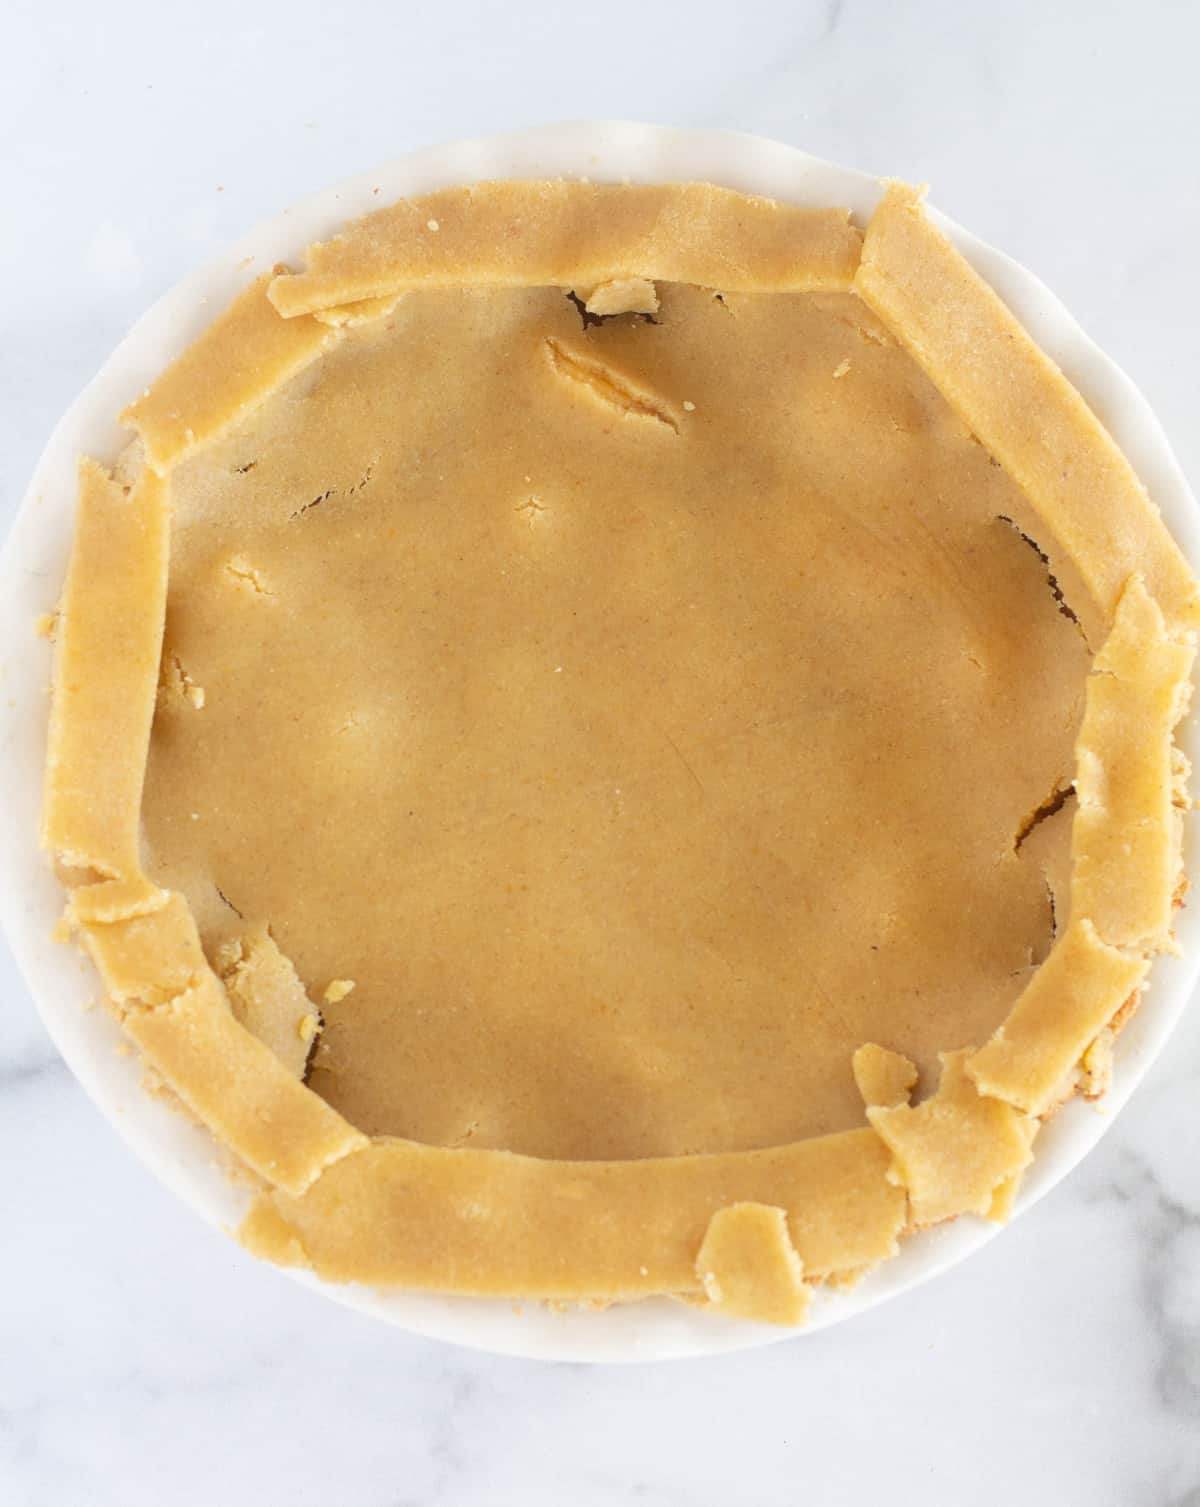 apple pie with unbaked top crust and strips of crust around the edge